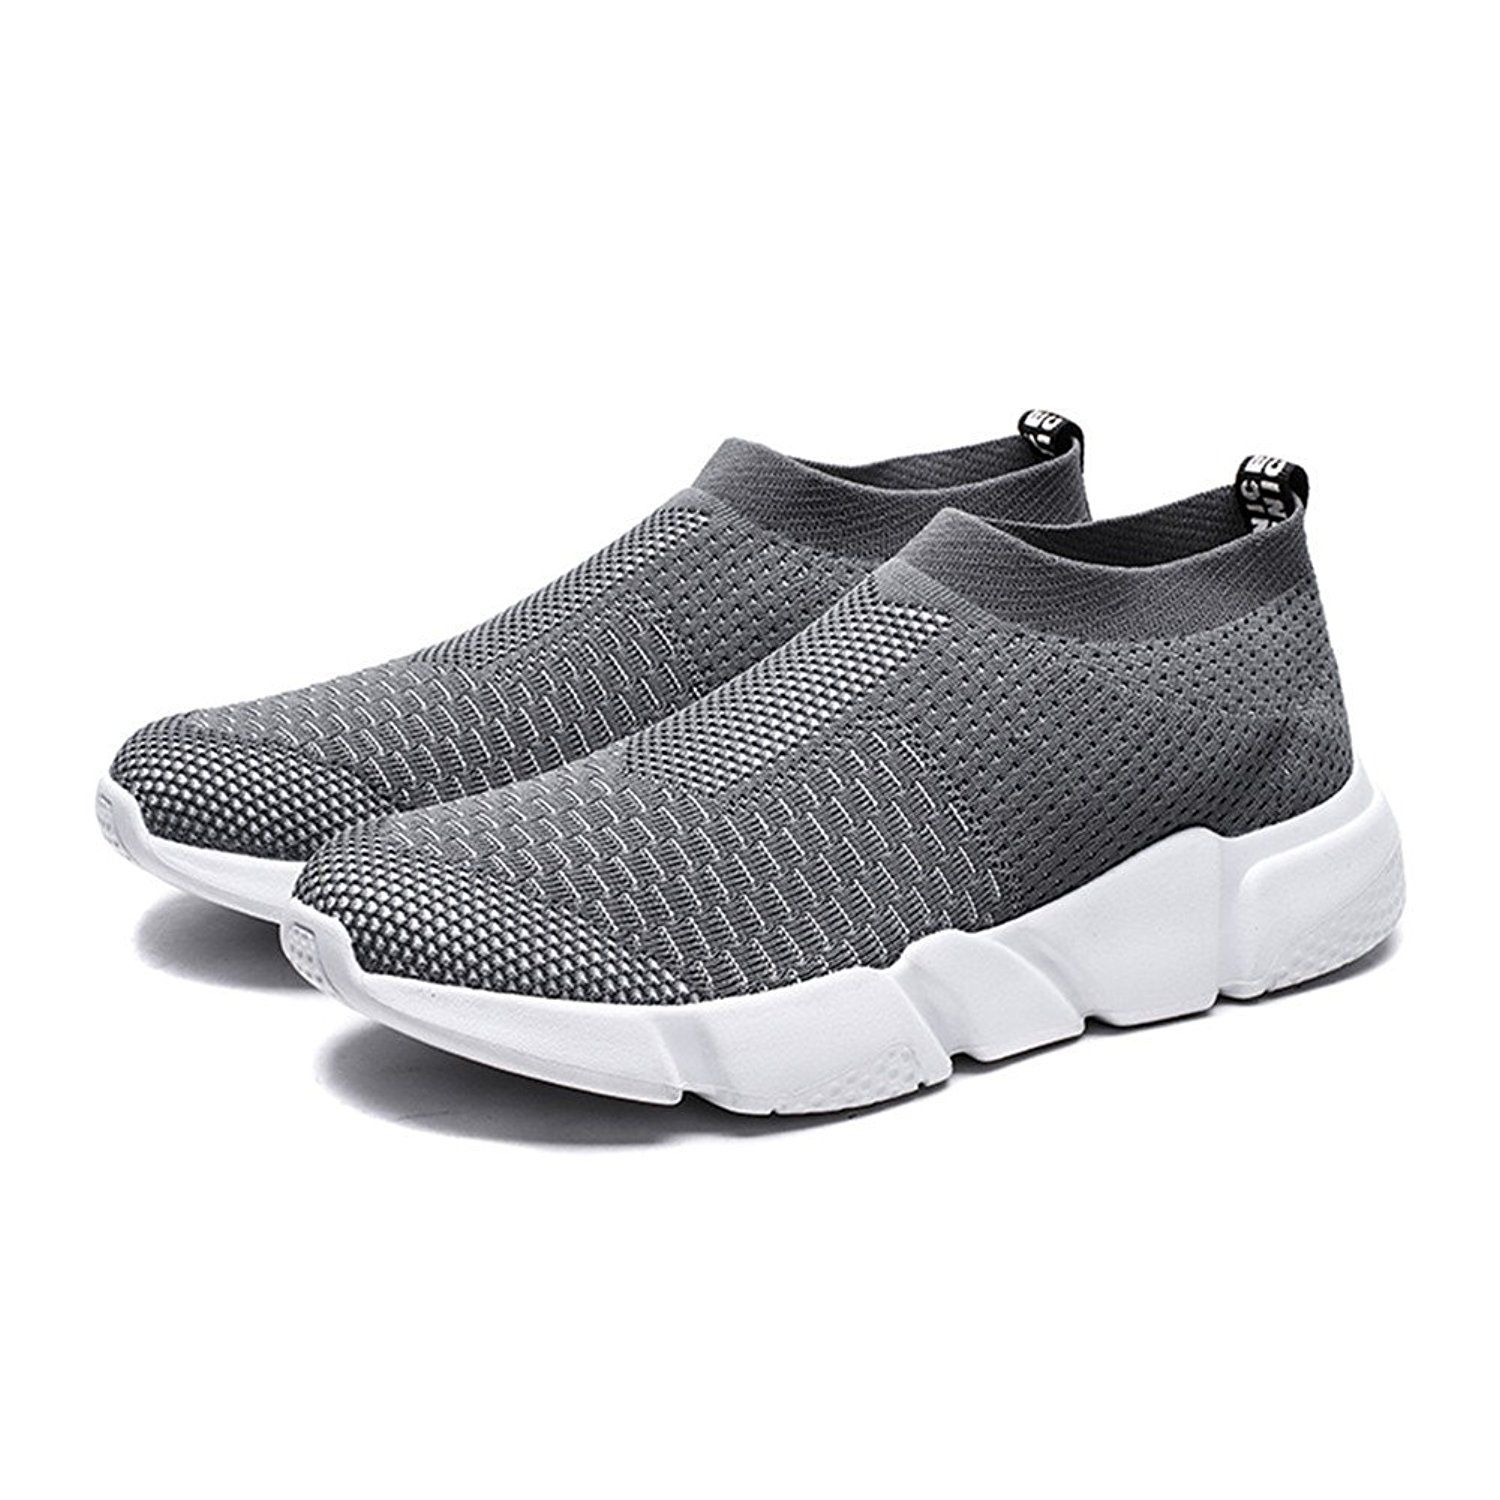 Surf Handsome Boy Casual RunningShoes Sneakers Men's